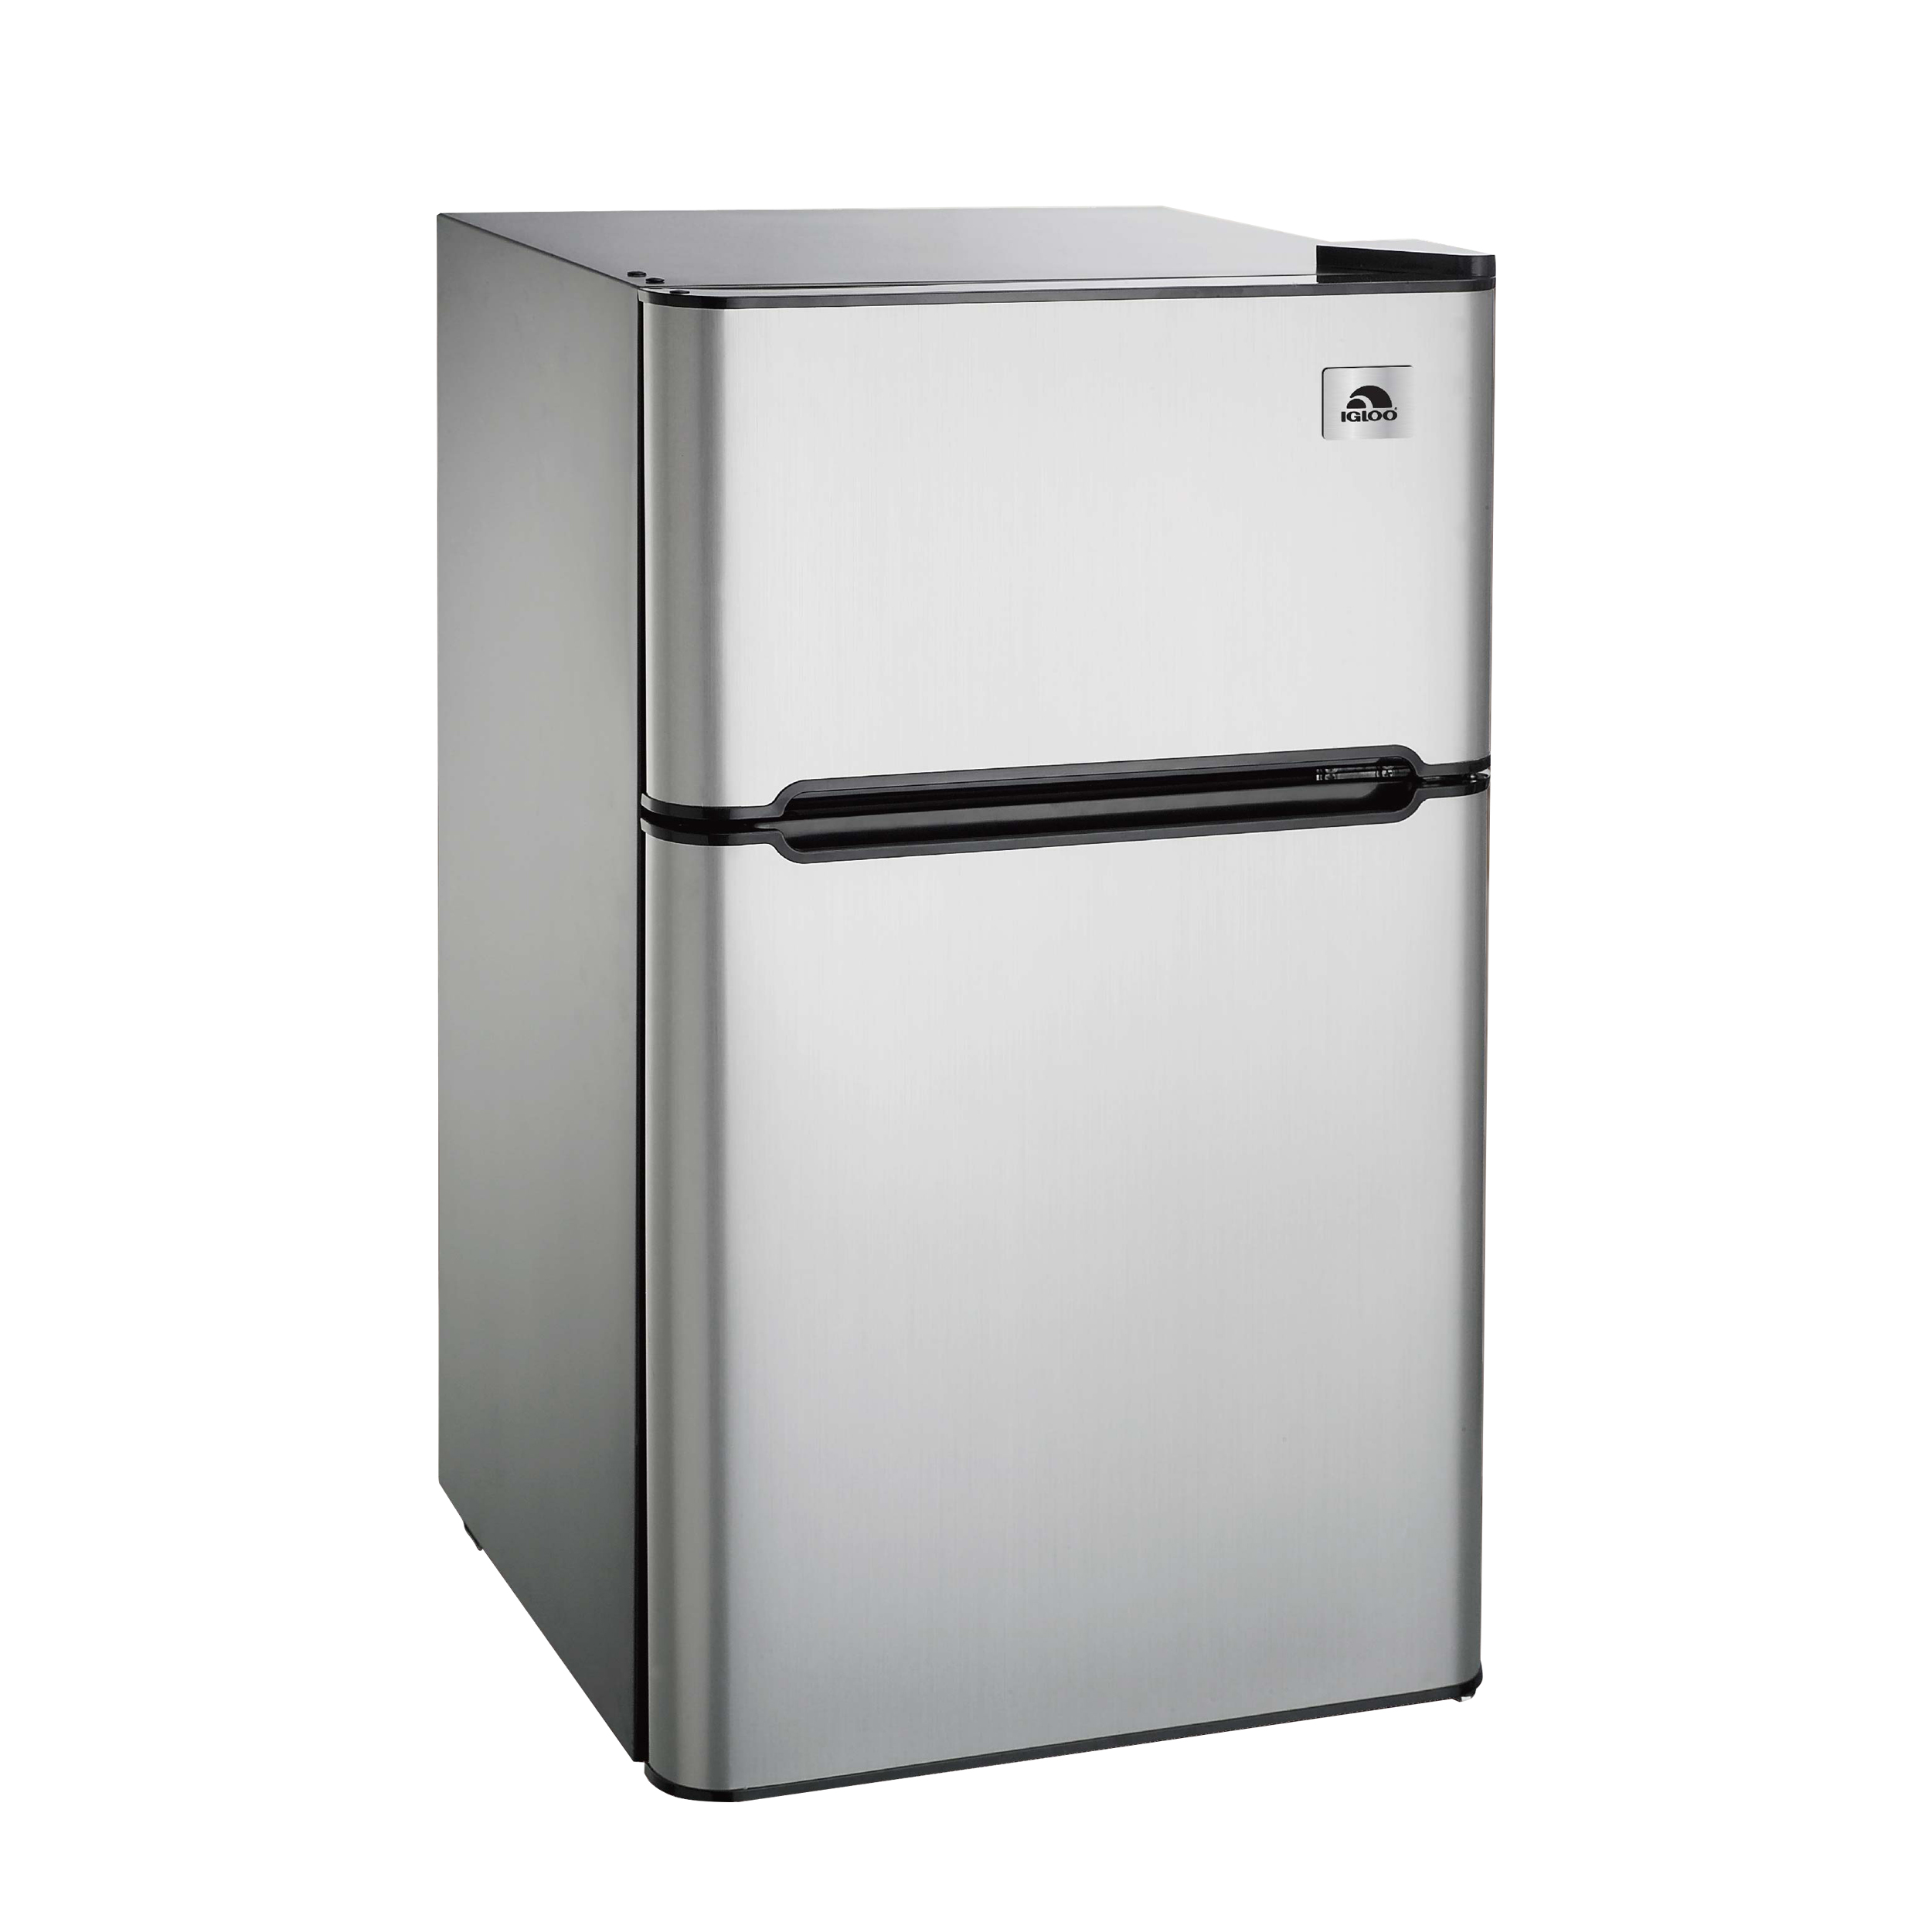 Igloo 3.2 cu. ft. 2-Door Refrigerator and Freezer, Stainless Steel